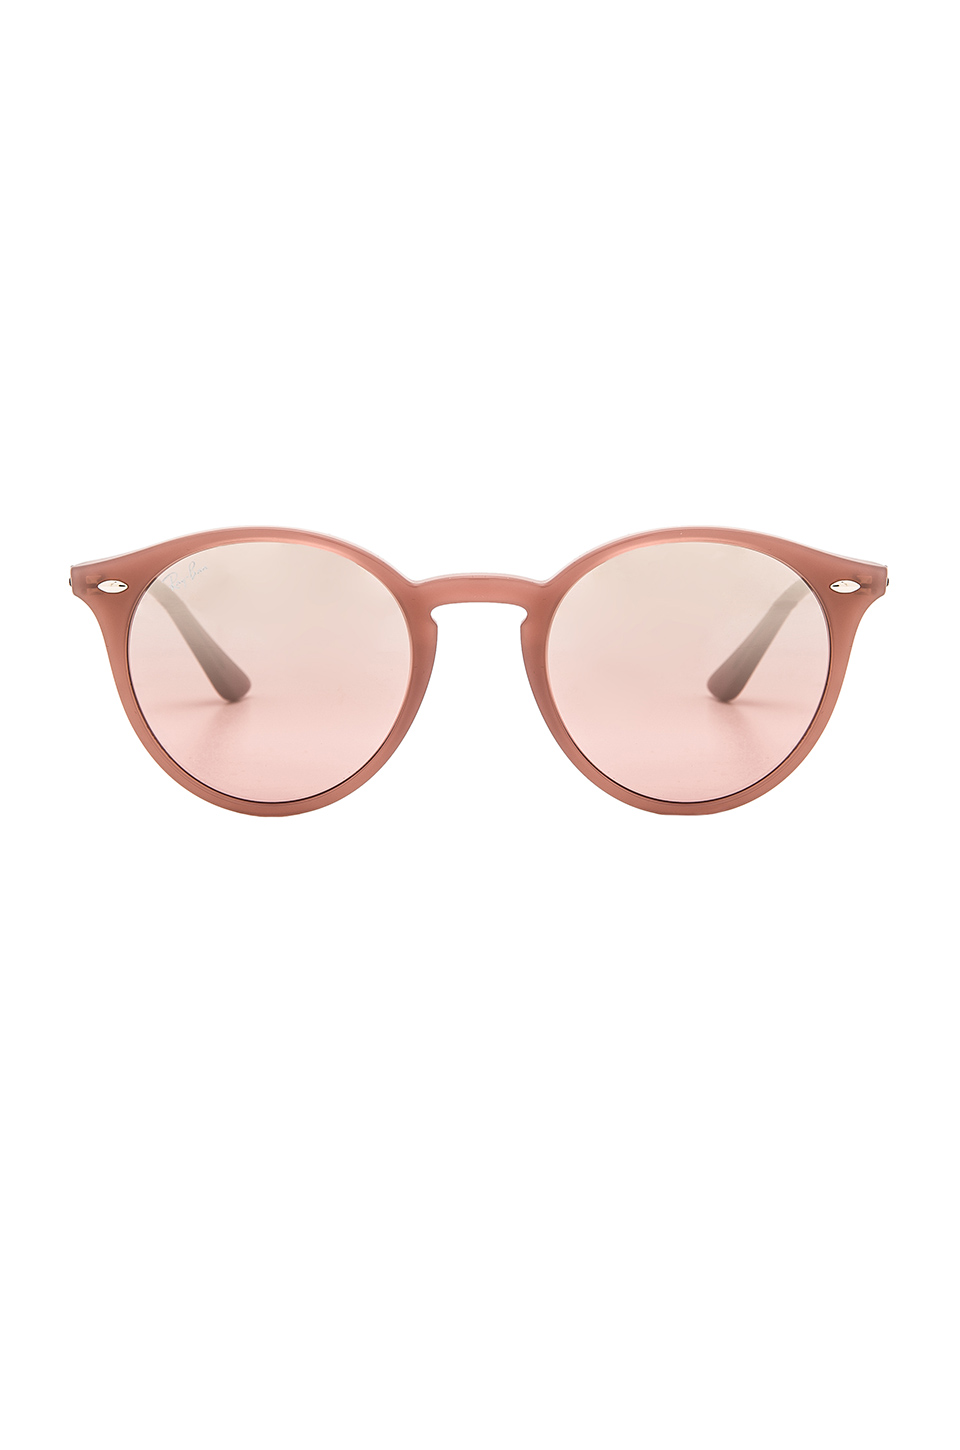 Ray-Ban Round Classic in Opal Antique Pink & Pink Mirror Silver Gradient